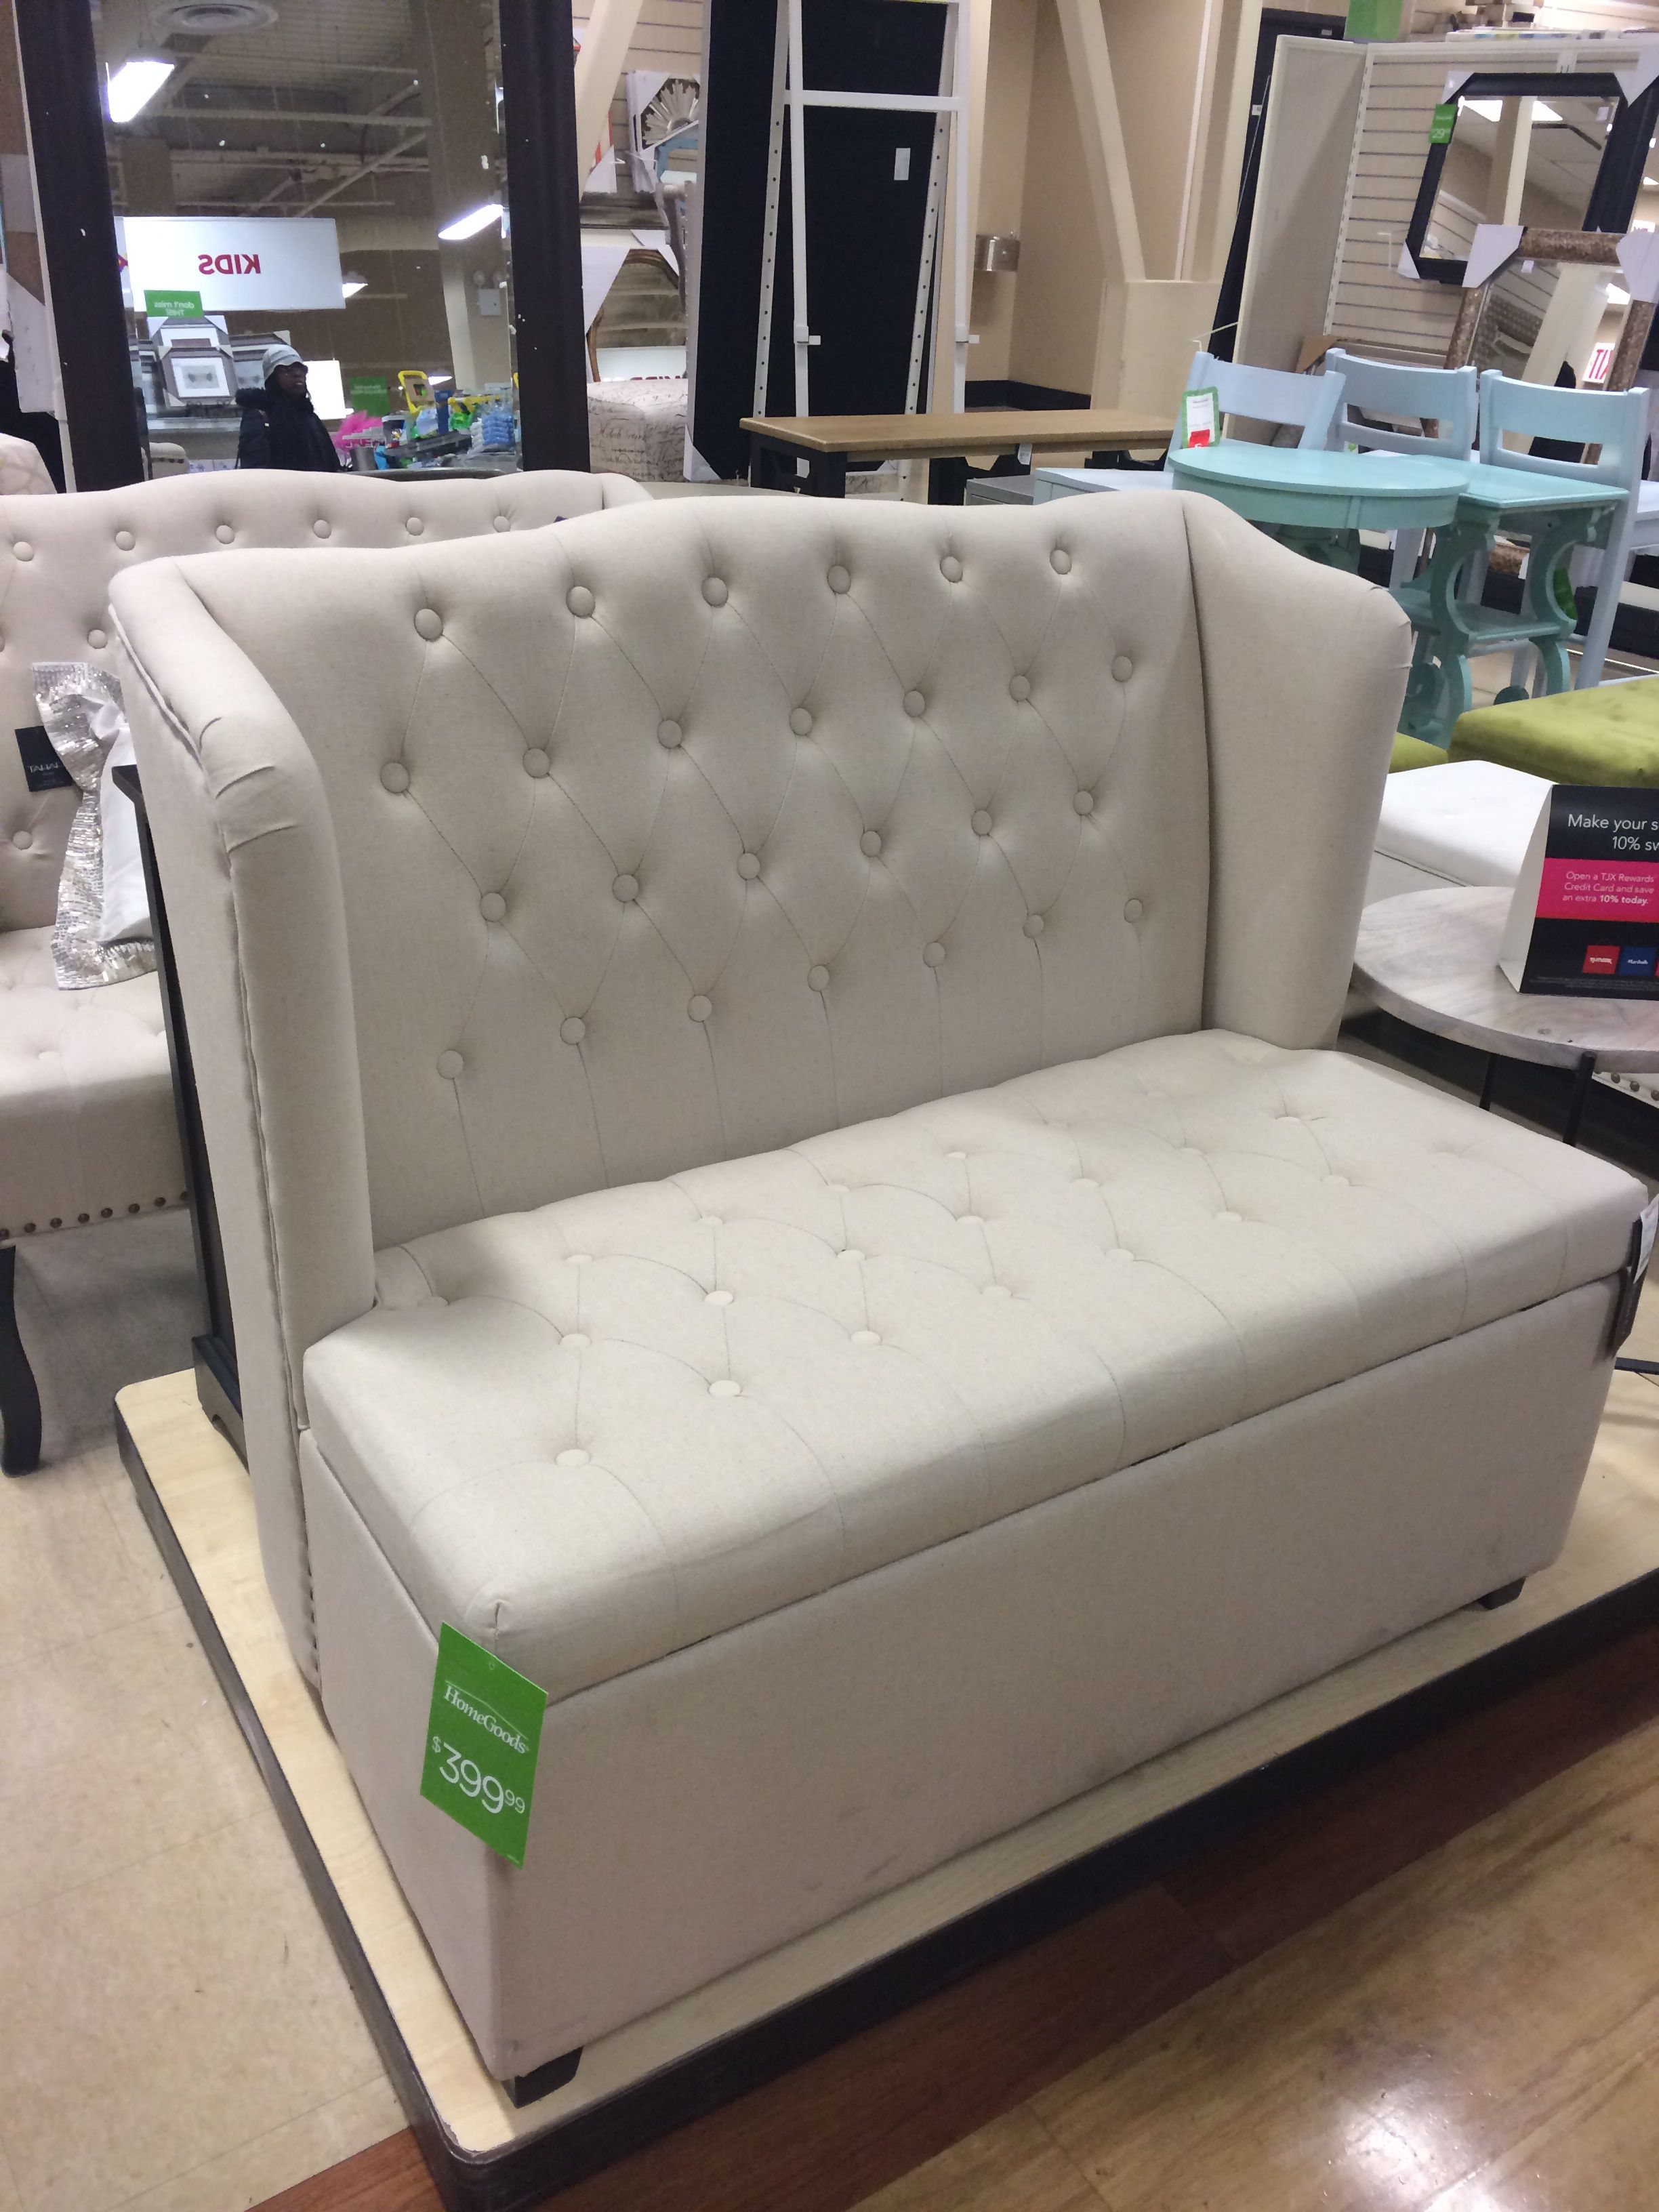 Cute Cynthia Rowley Sofa In Home Goods